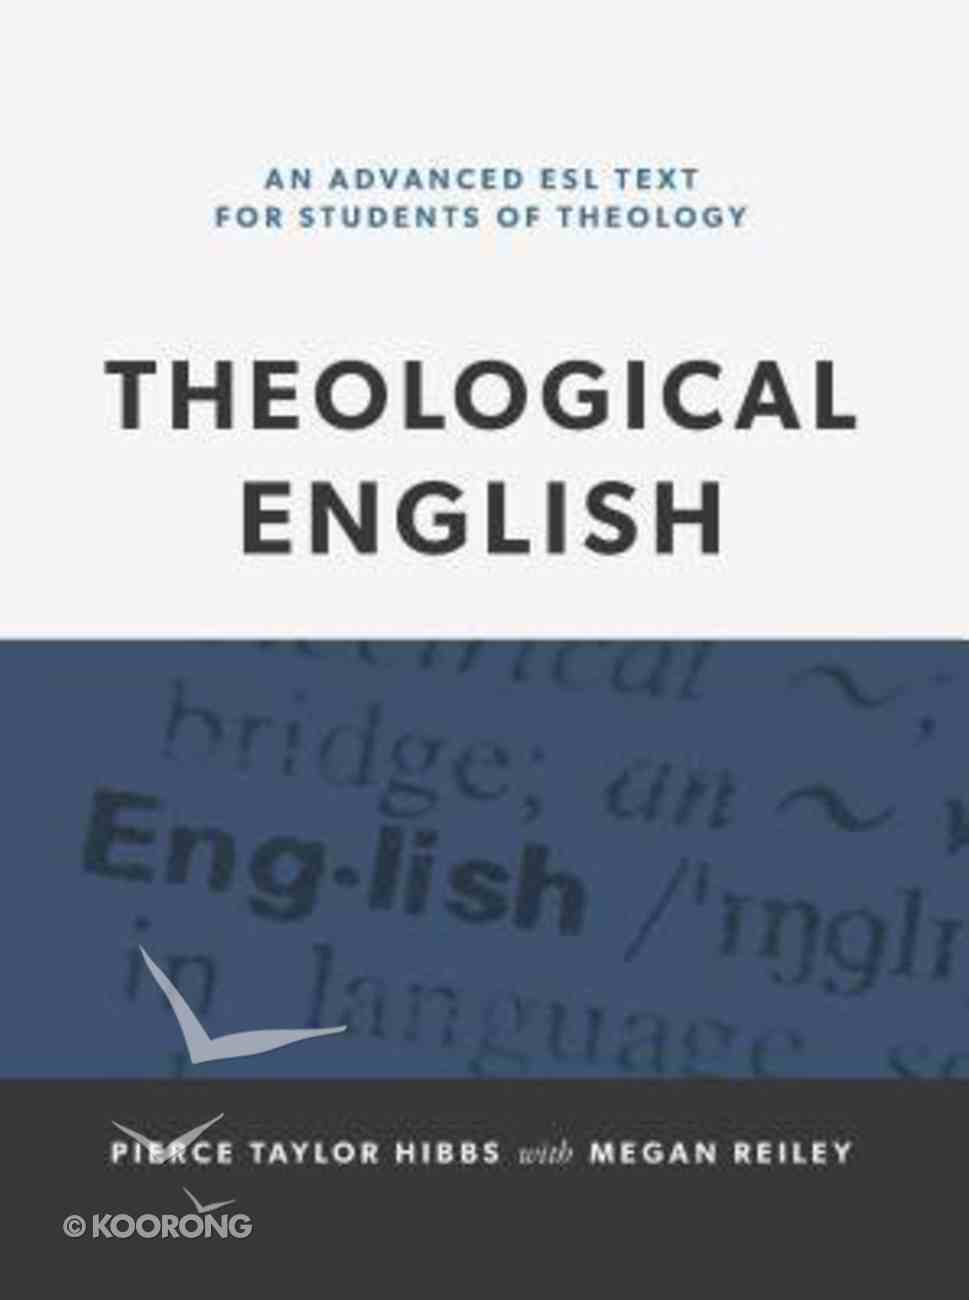 Theological English: An Advanced Esl Text For Students of Theology Hardback